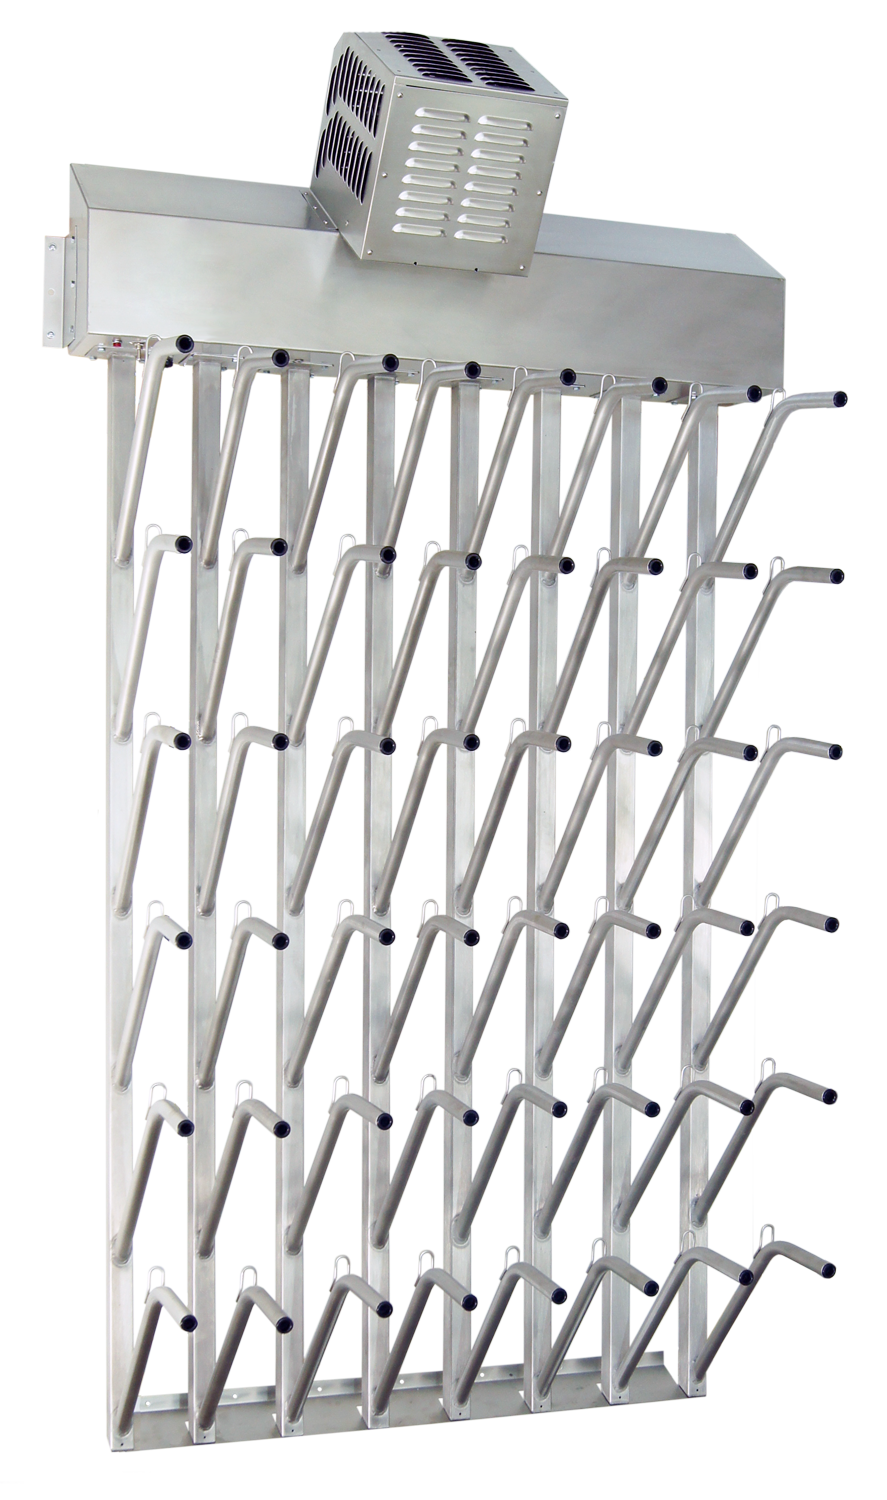 Food Processing Boot Dryer, Wall Mount, Stainless, 24 pair (24 boots) Model: W24FG